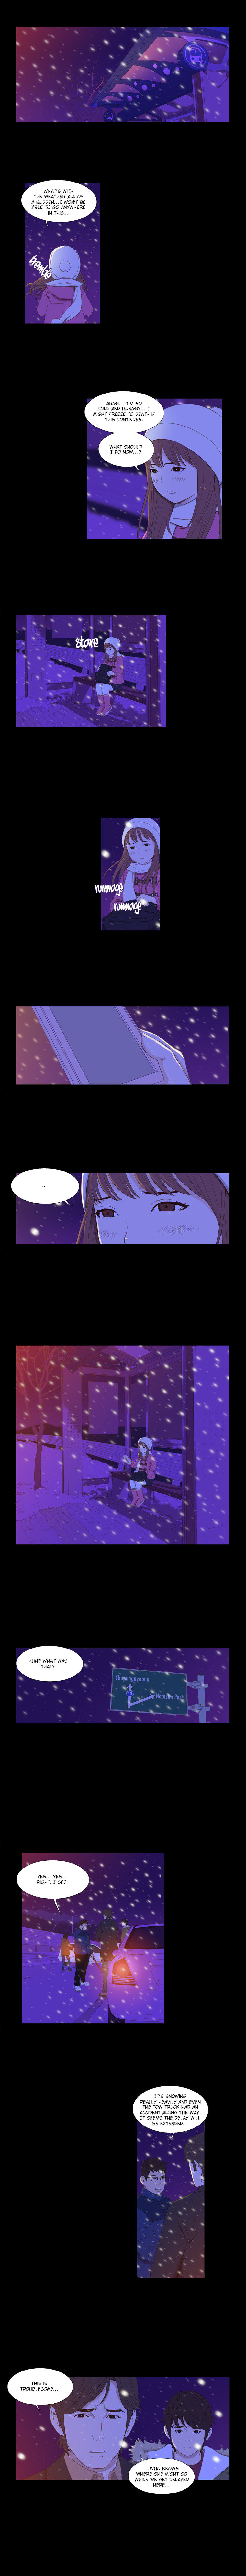 The Friendly Winter 58 Page 4